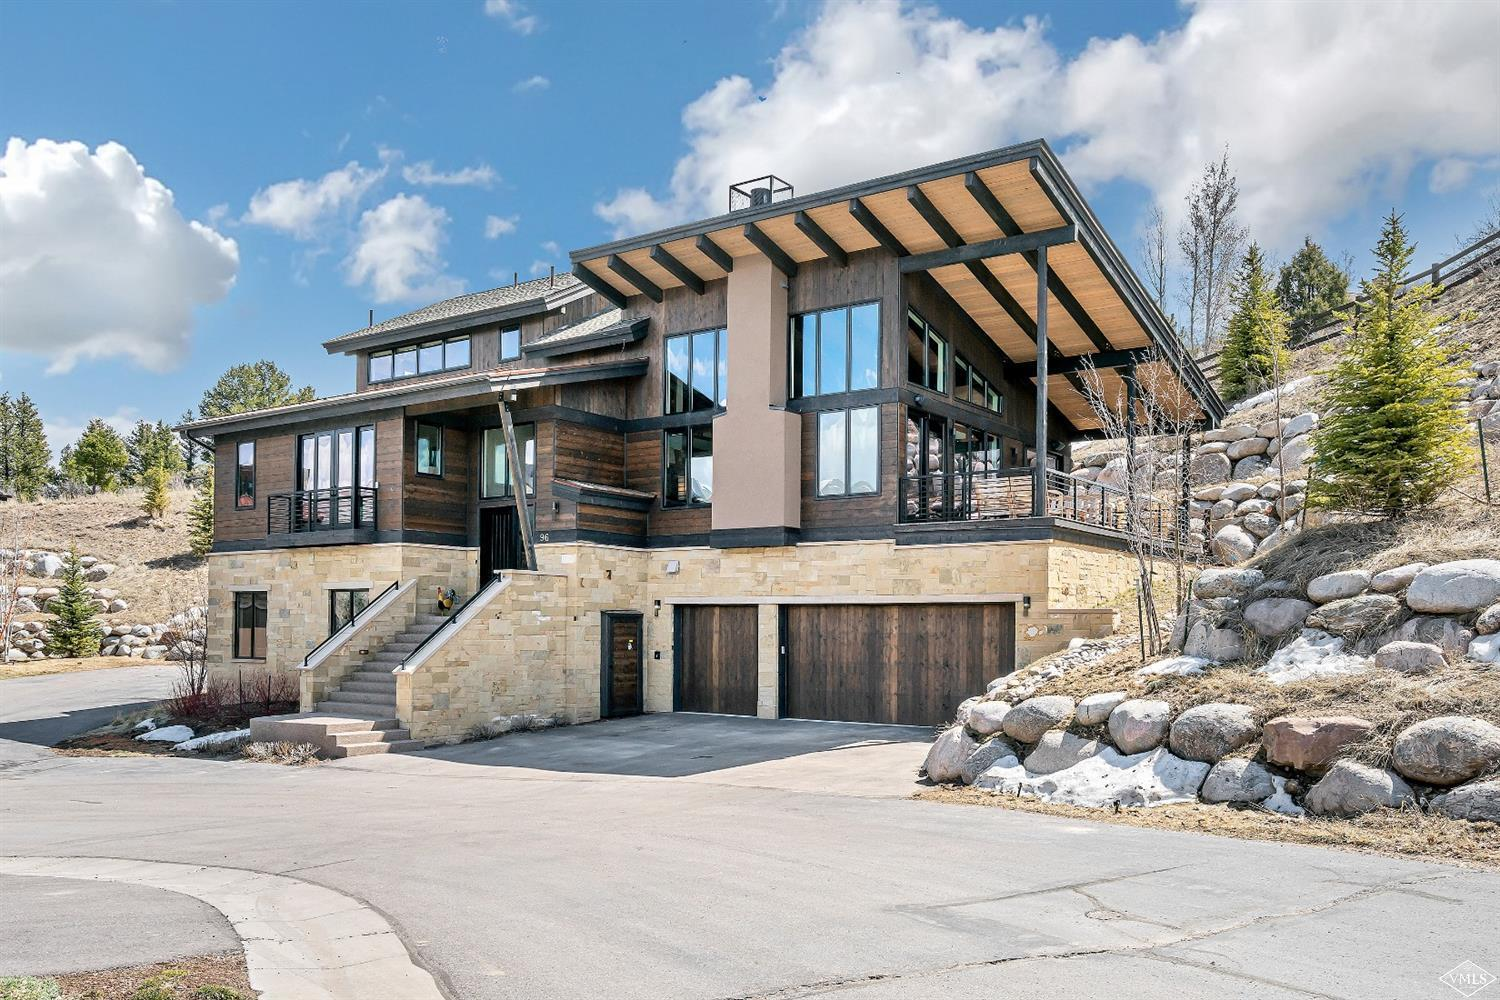 Mountain contemporary green-built home in quiet location offers all day sunshine through massive windows with panoramic western and northern views. Gourmet kitchen with high-end appliances opens into vaulted great room with exposed beams, dry stacked fireplace and expansive Ipe deck. Complete with 3-car garage, 2-master suites one on main level, office, family room with wet bar and wine room.